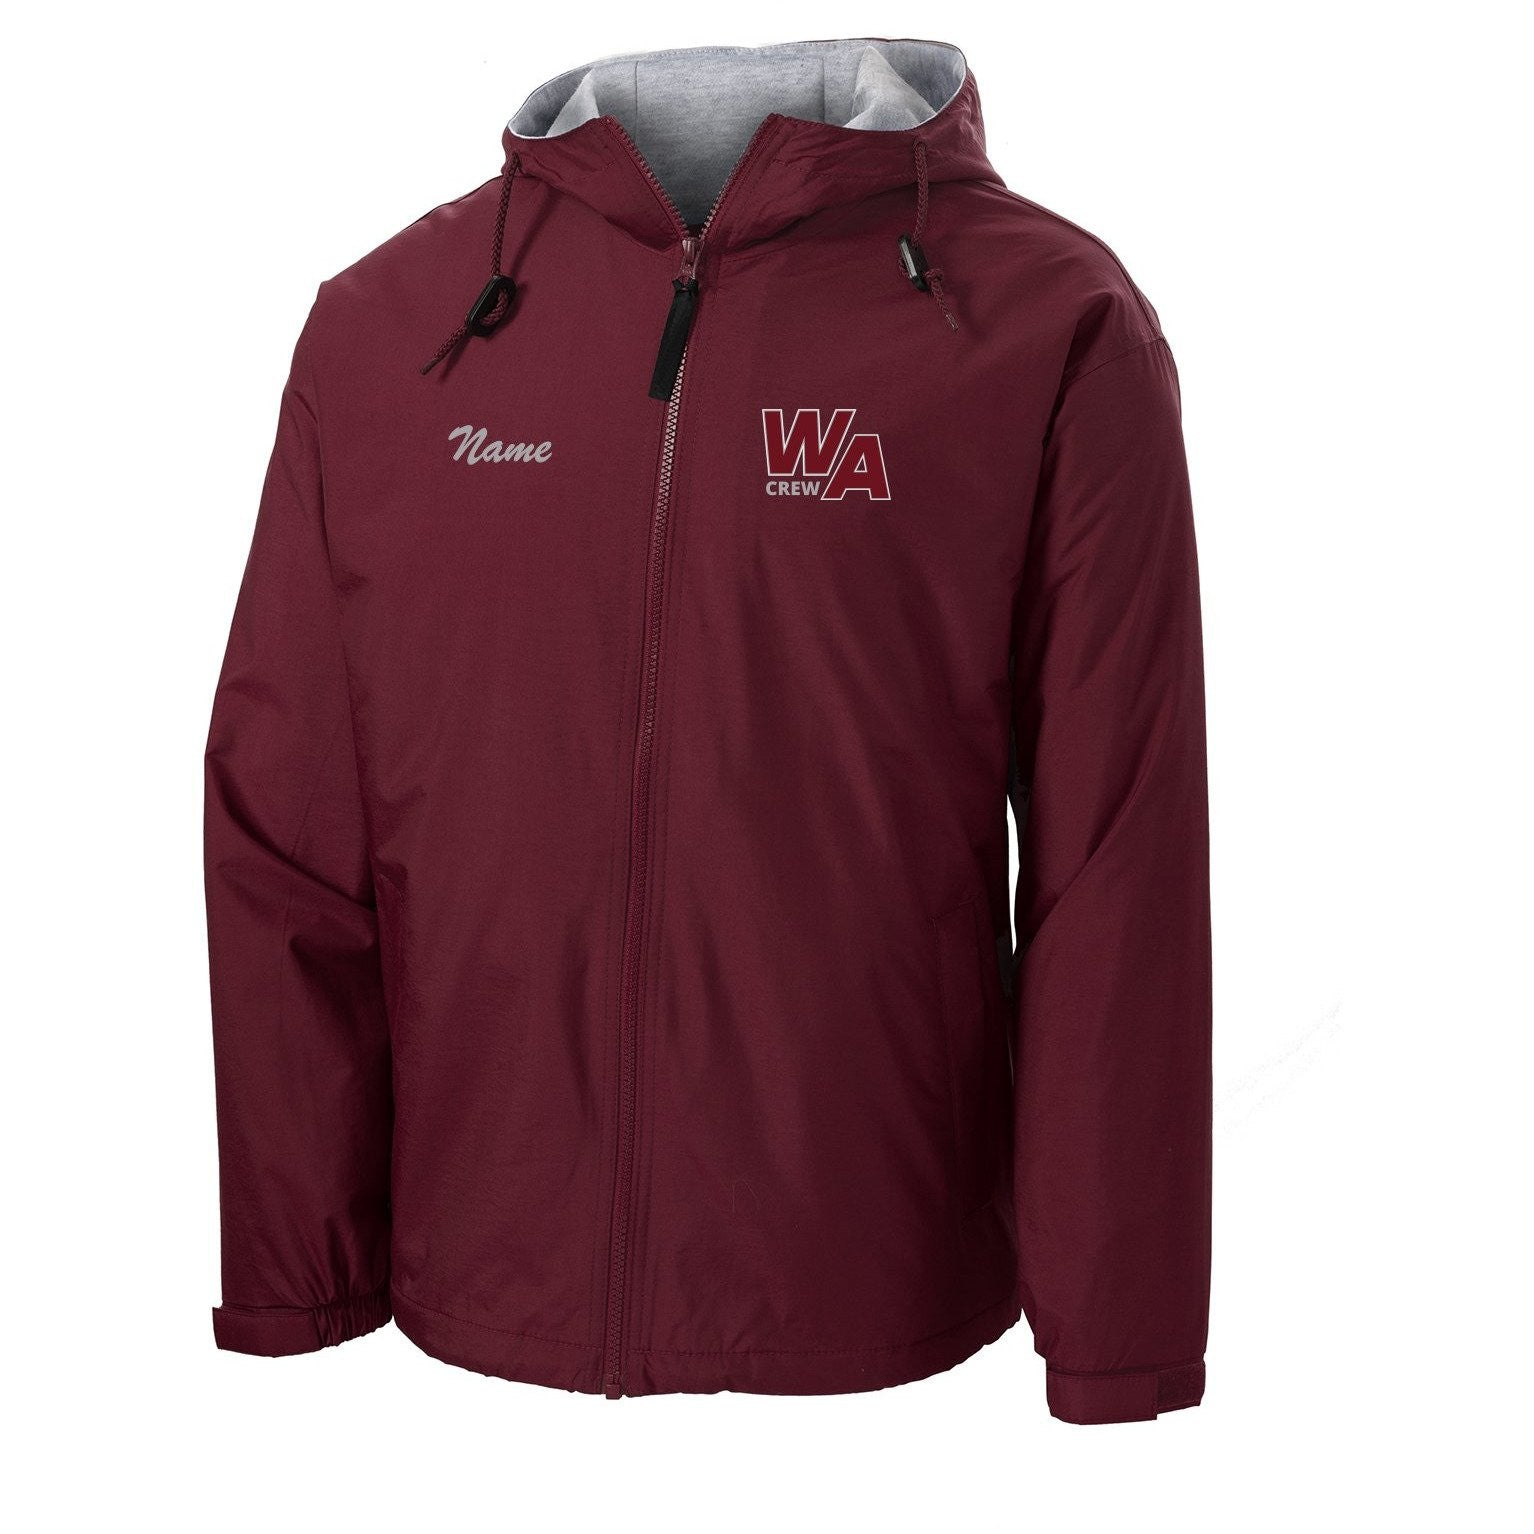 Official Westford Crew Team Spectator Jacket